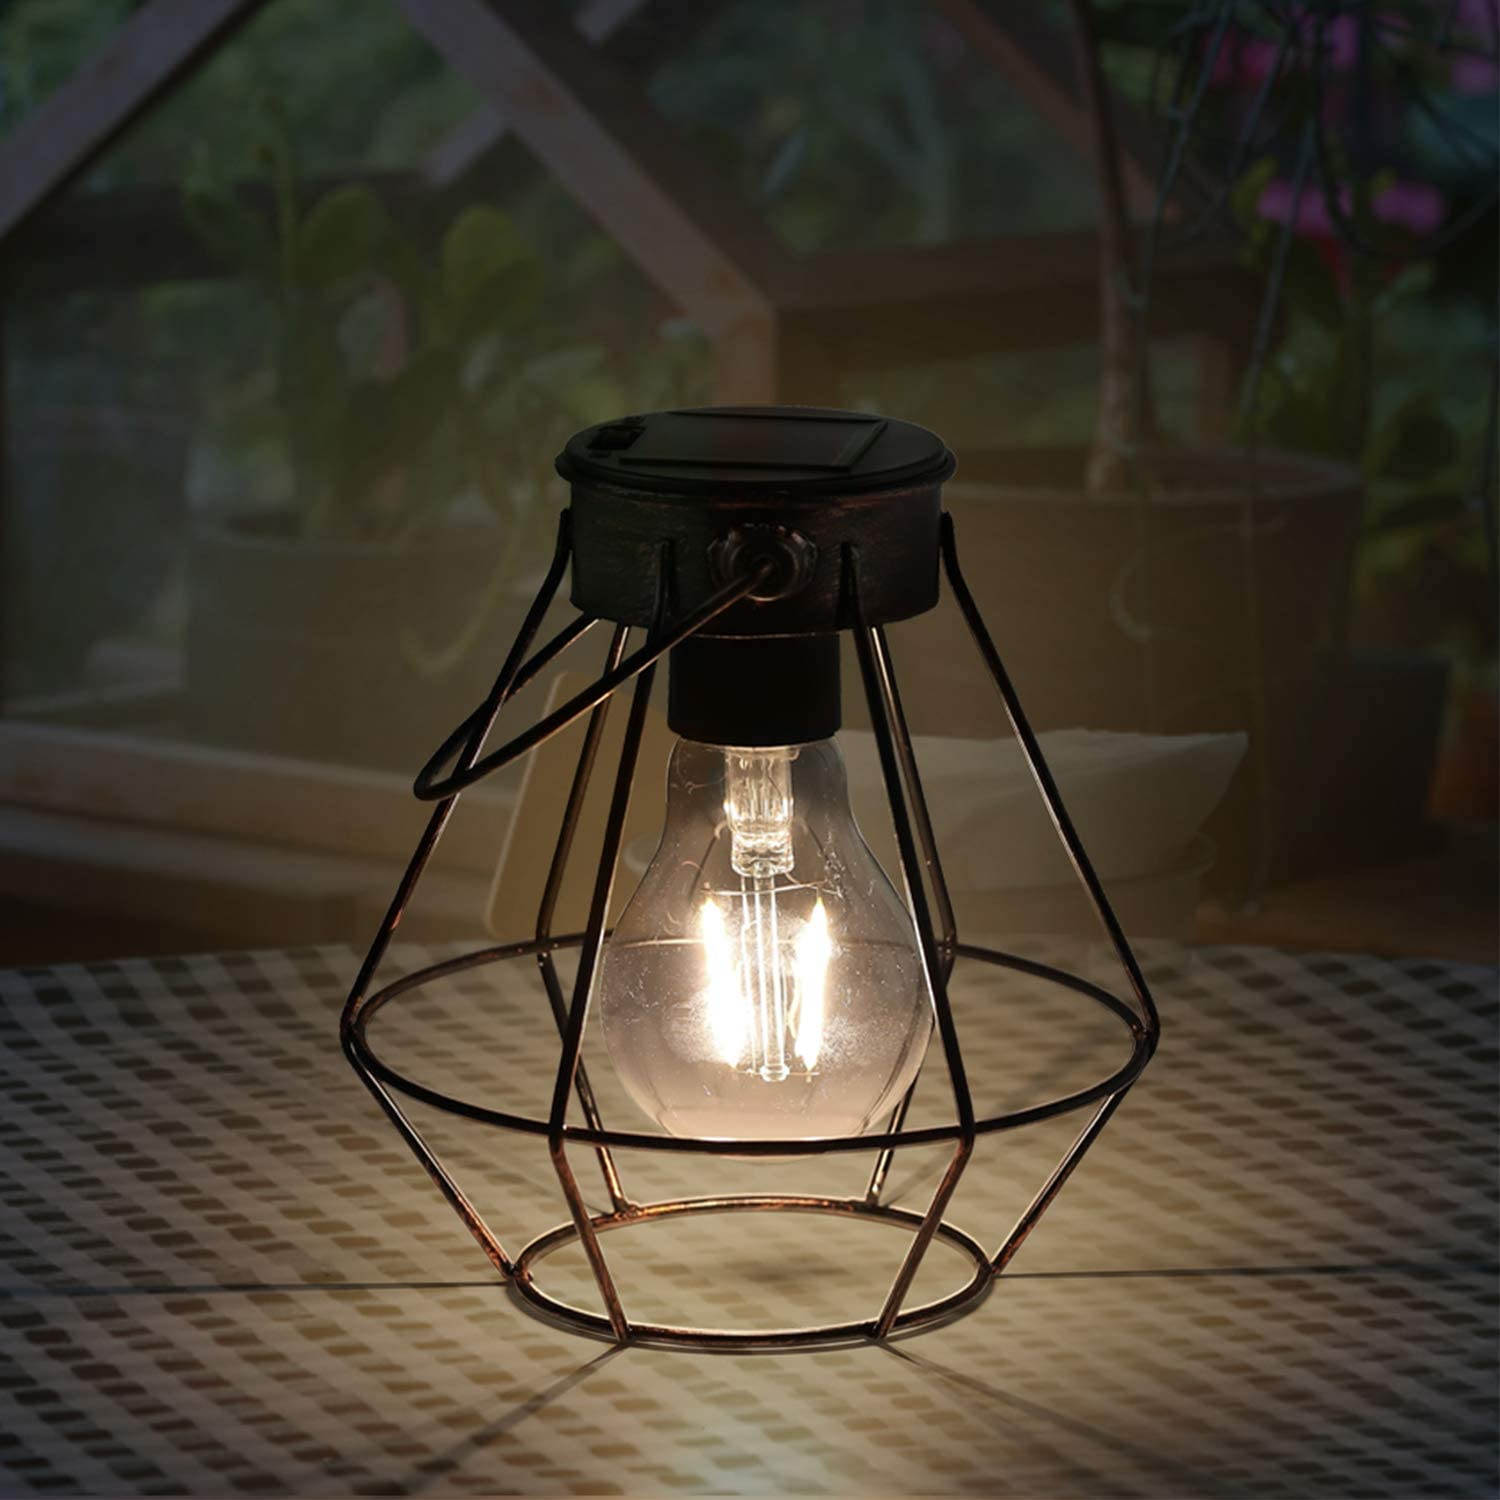 """Solar Lanterns Outdoor Hanging 6.1""""Small Design with Upgrade Waterproof Warm White LED Bulbs Hanging Solar Lights Metal Vintage Solar Lamp for Garden Patio Courtyard Lawn Landscape Decor"""